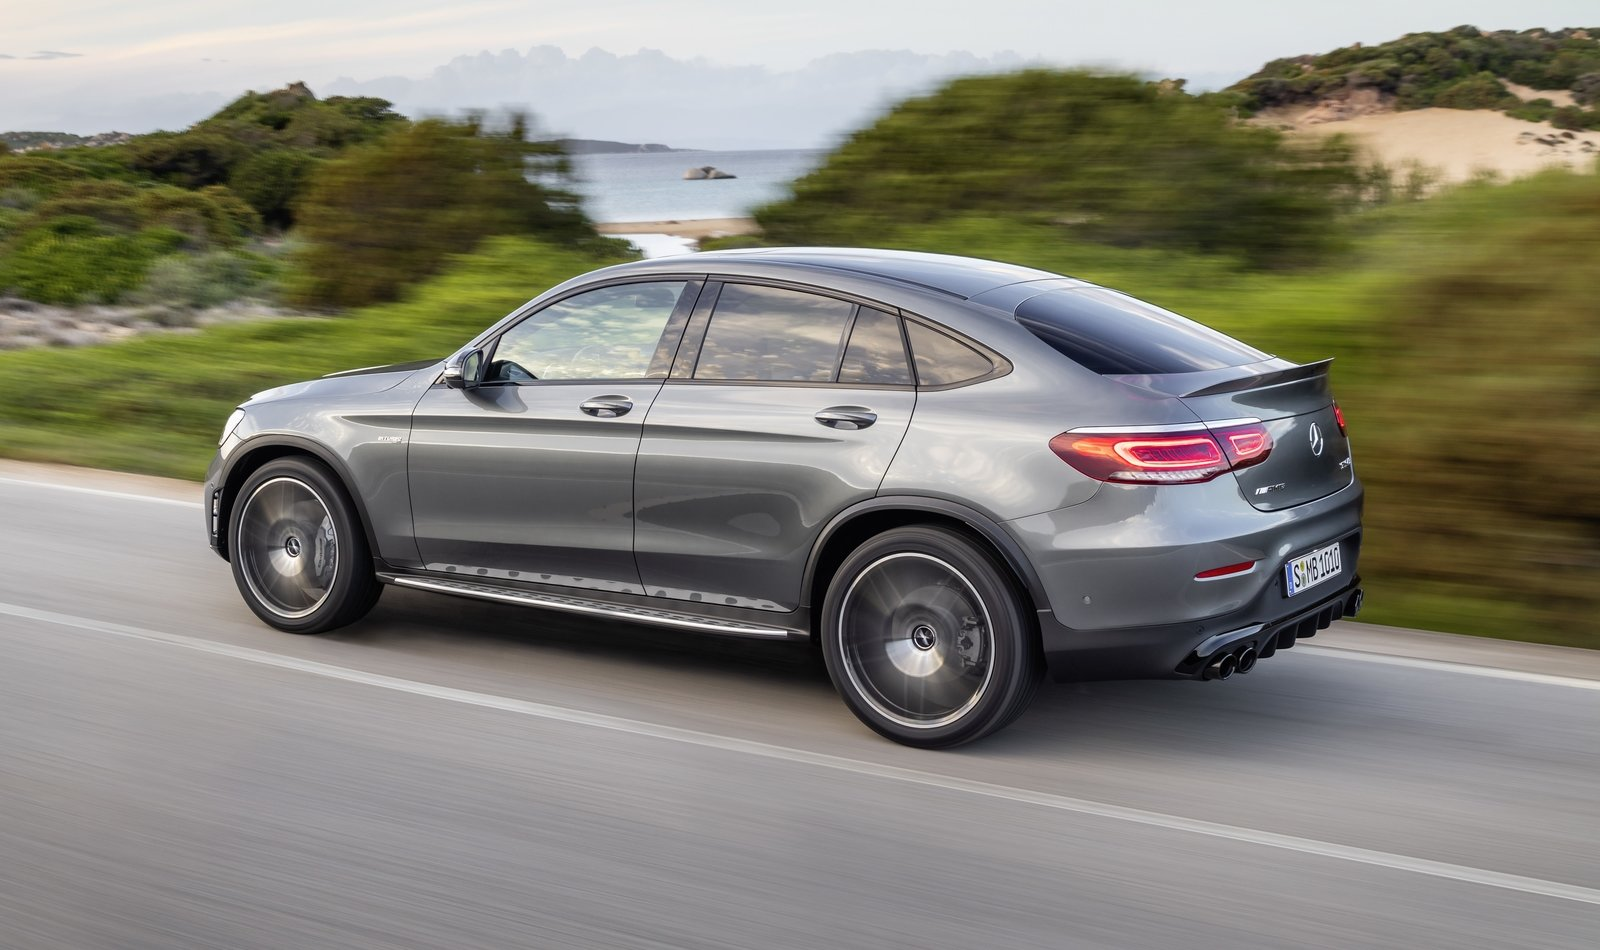 Mercedes Amg Glc43 Unveiled With Aggressive Looks And Beefed